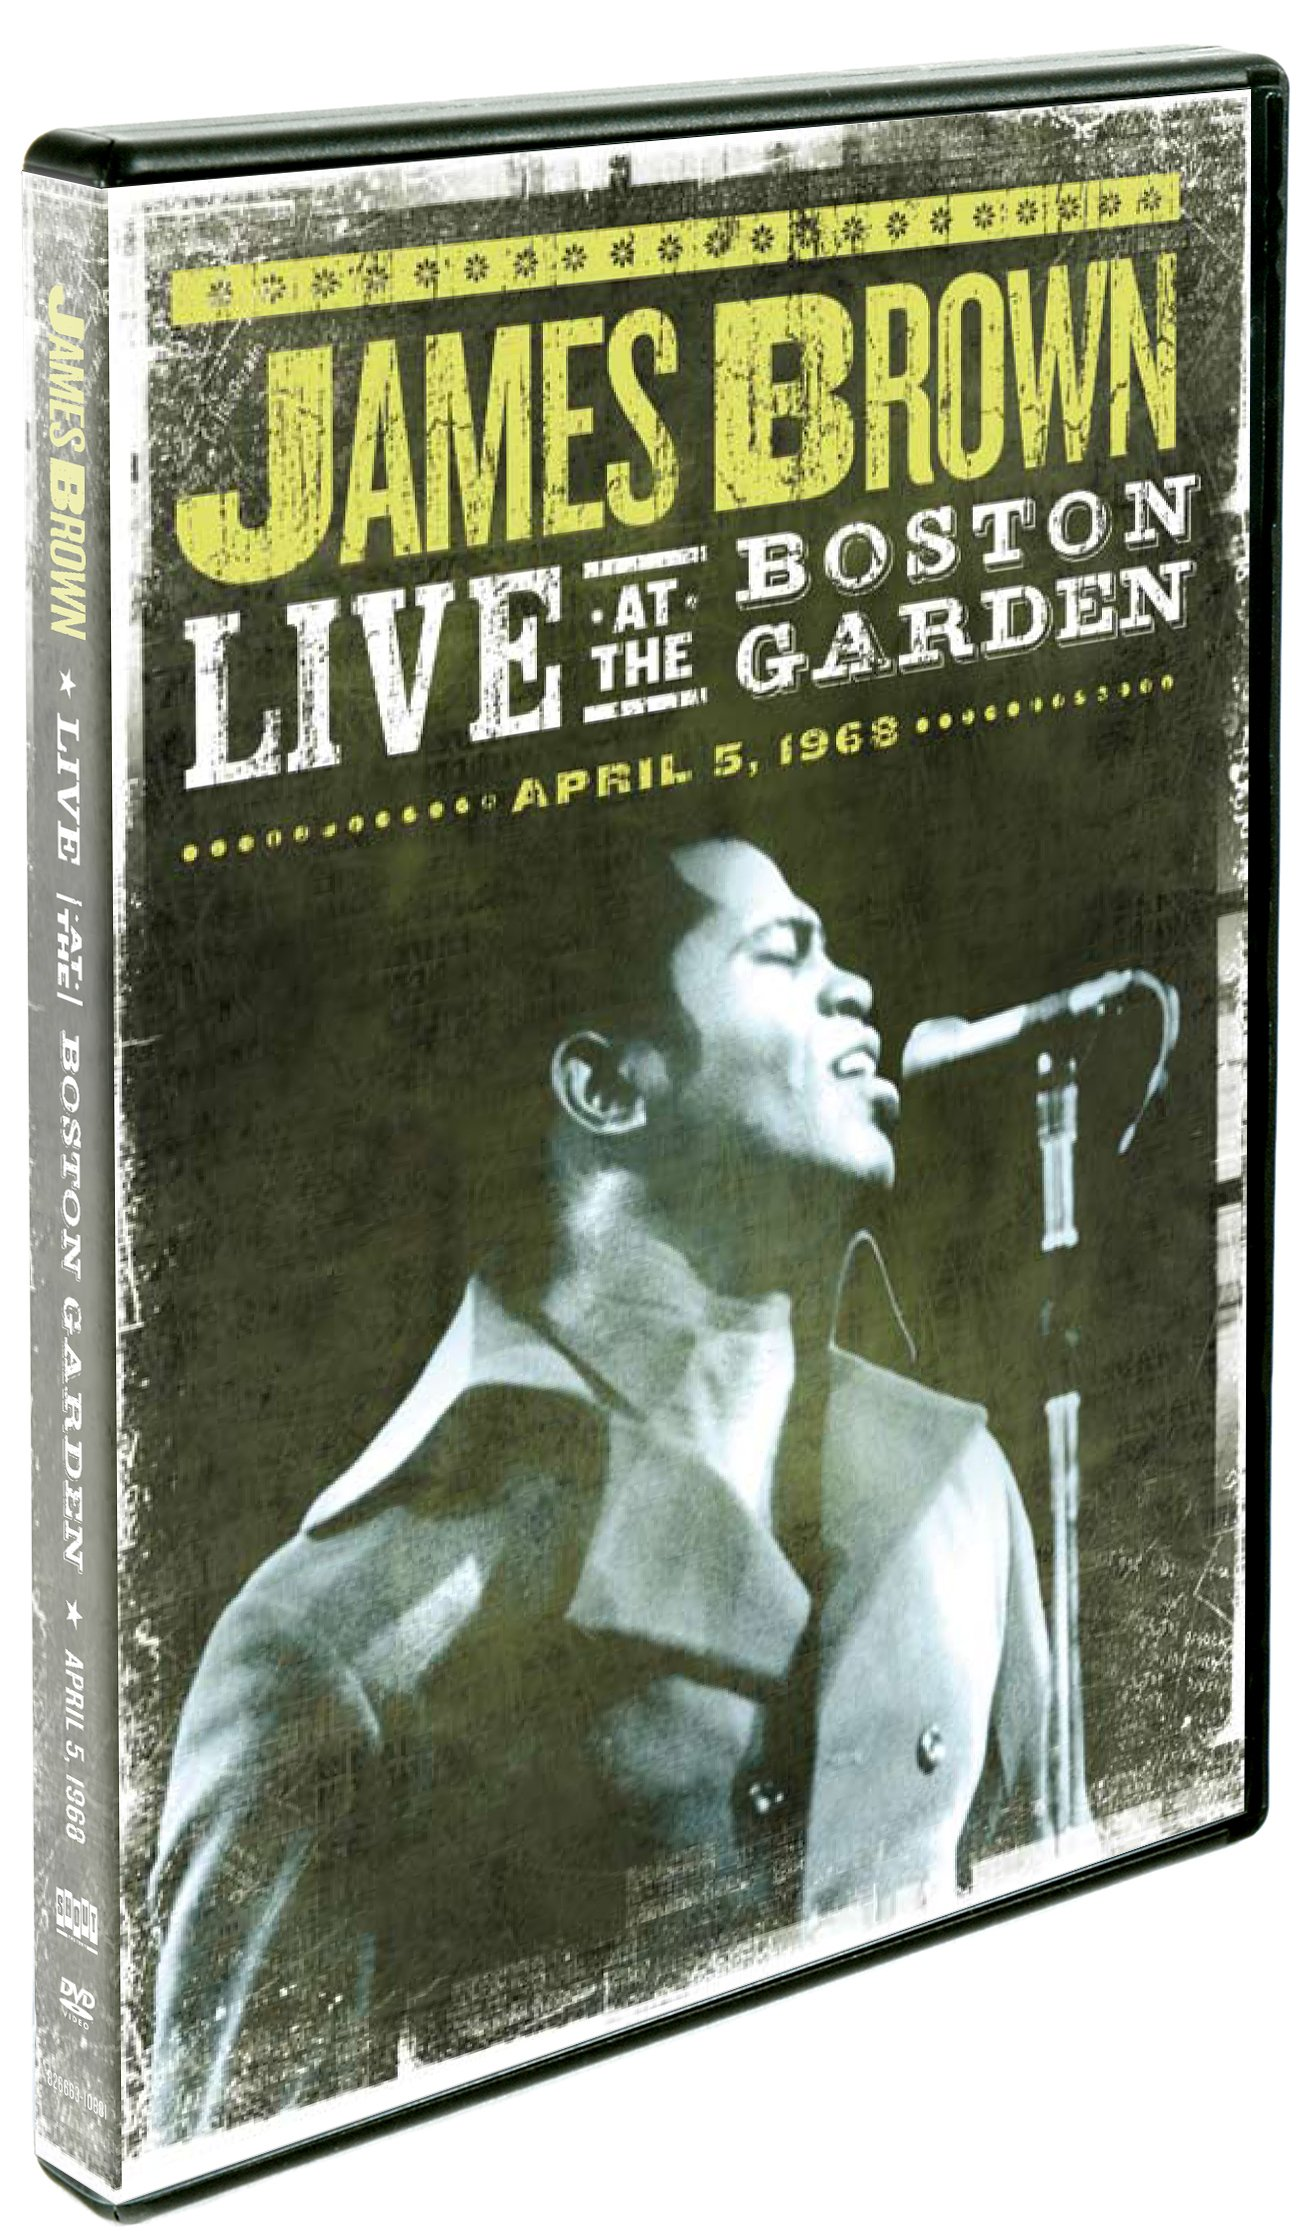 James Brown: Live at the Boston Garden - April 5, 1968 by Shout Factory